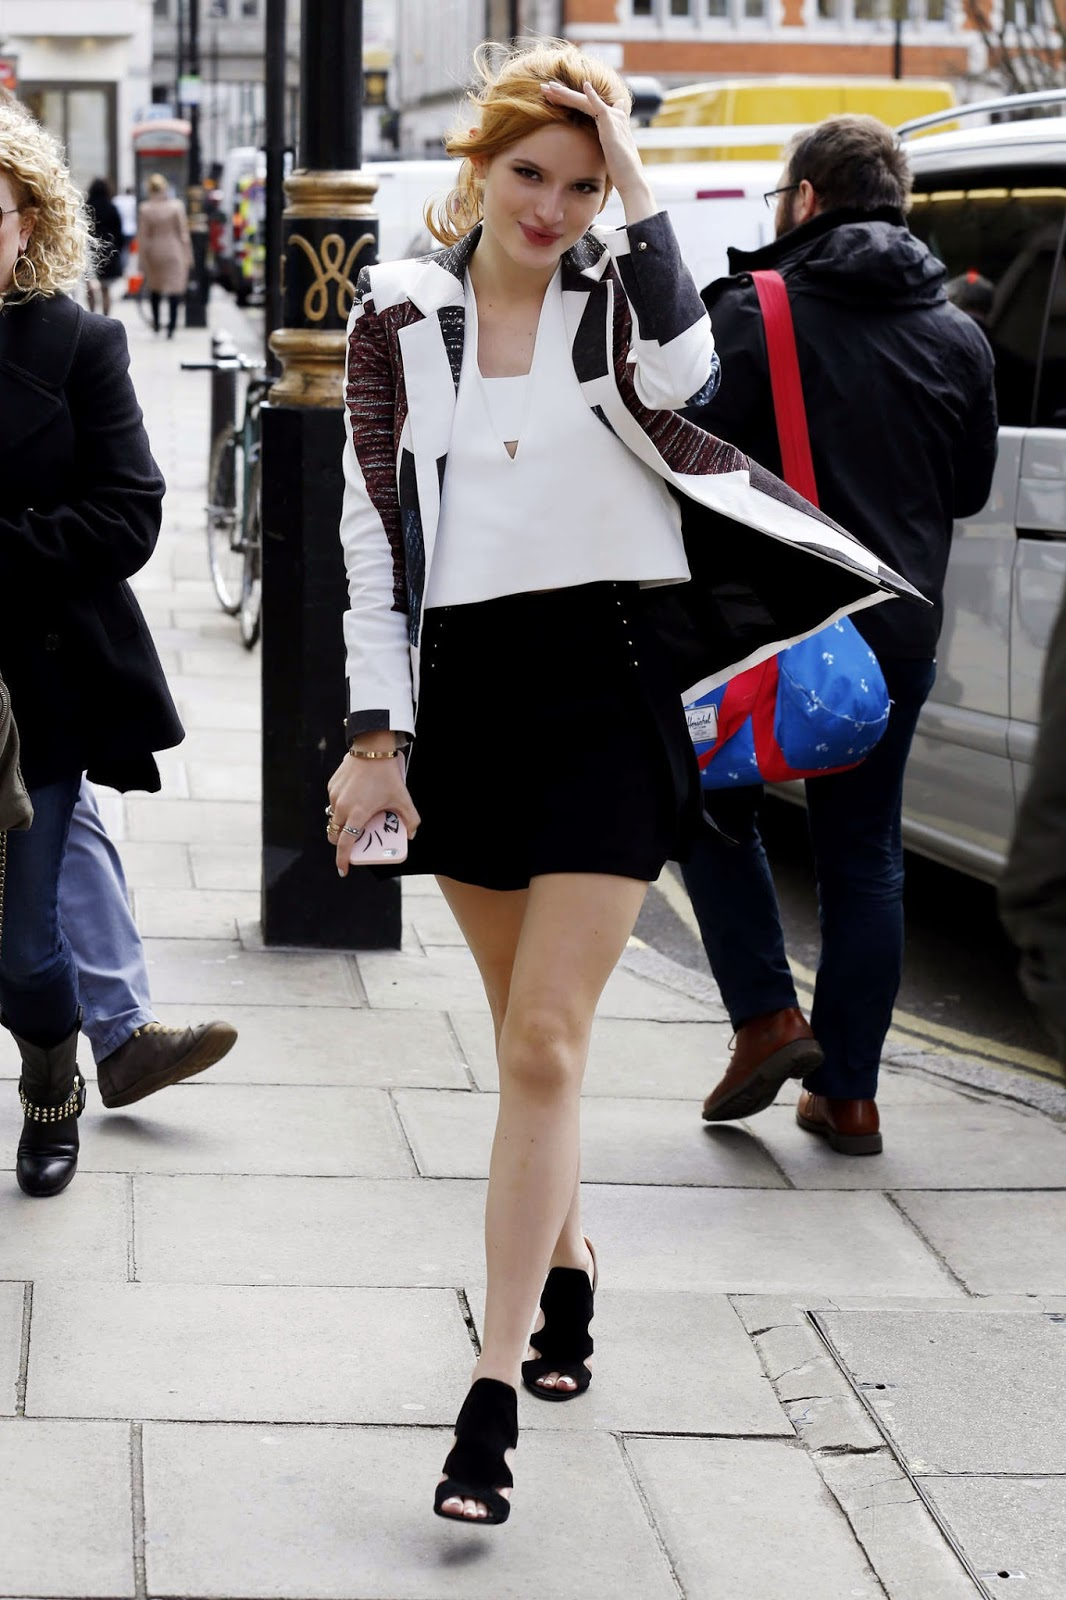 Bella Thorne in a short skirt out and about in London